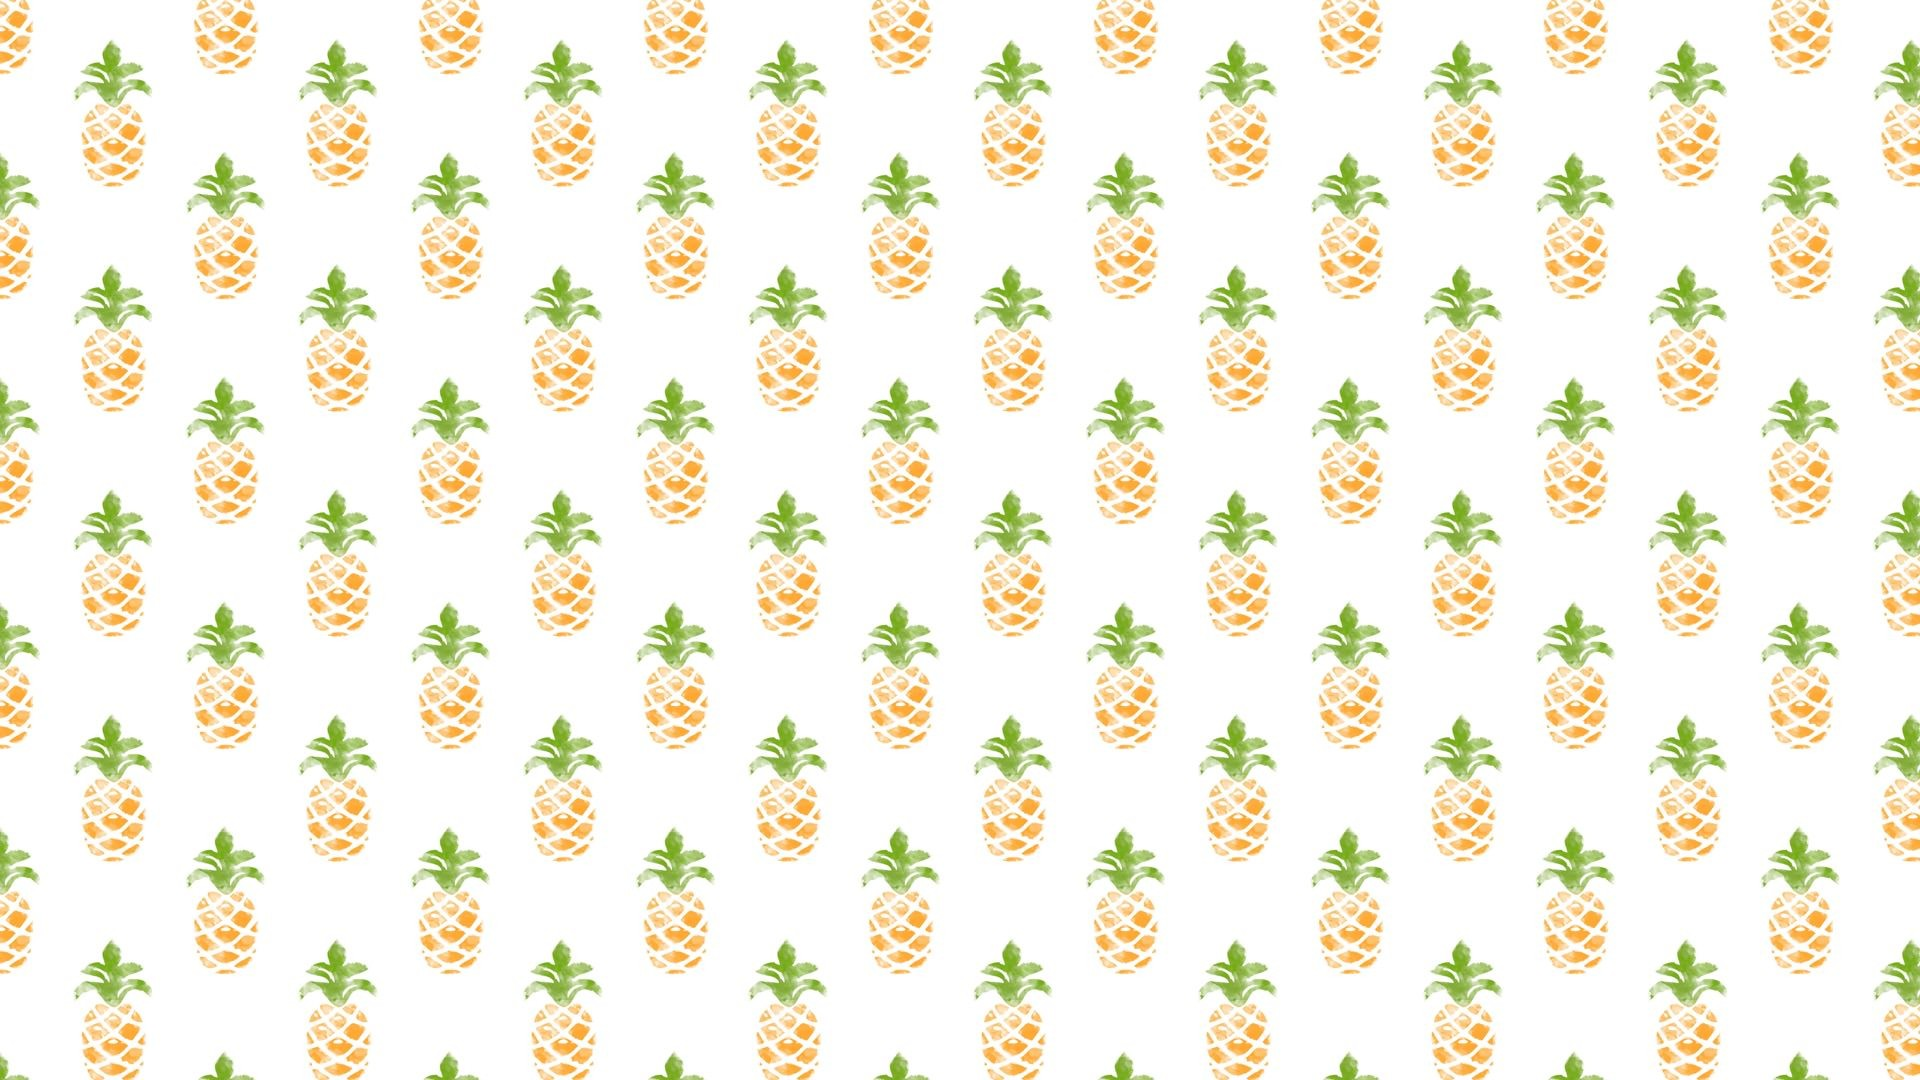 Best Wallpaper Mac Pineapple - 105066-download-pineapple-background-1920x1080-for-iphone-5  Perfect Image Reference_244960.jpg